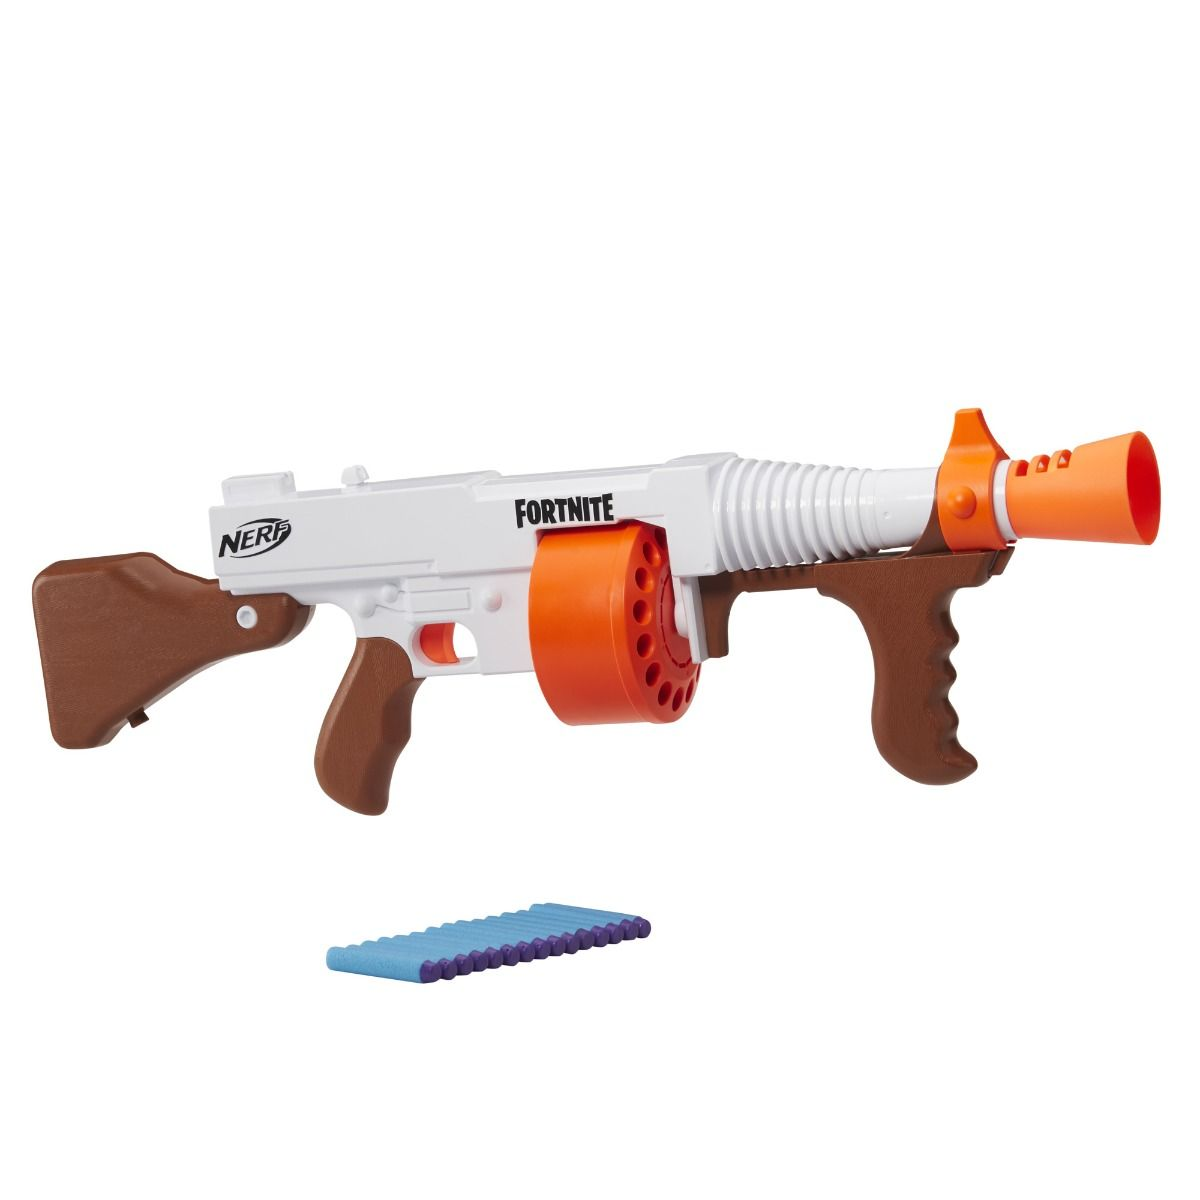 Nerf Fortnite DG